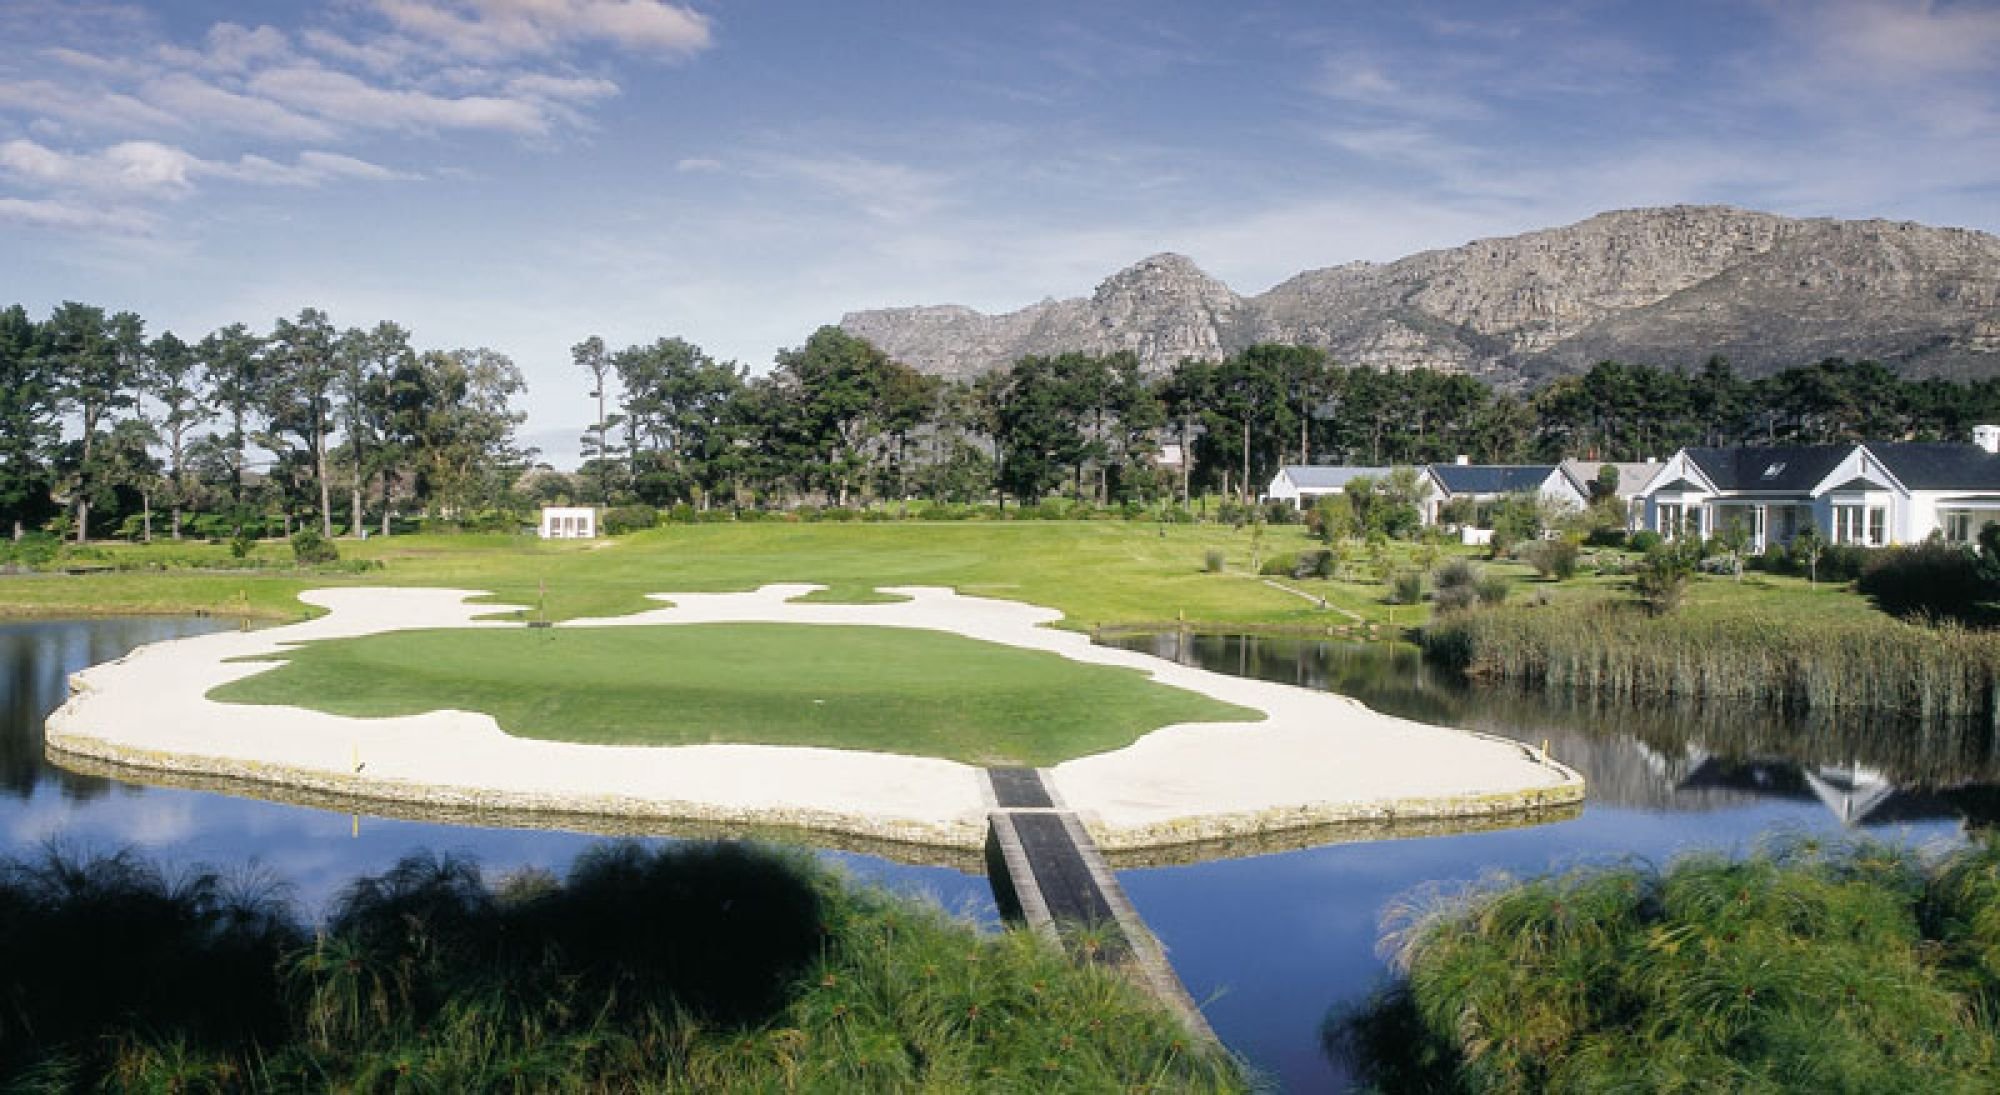 View Steenberg Golf Club's impressive golf course situated in incredible South Africa.